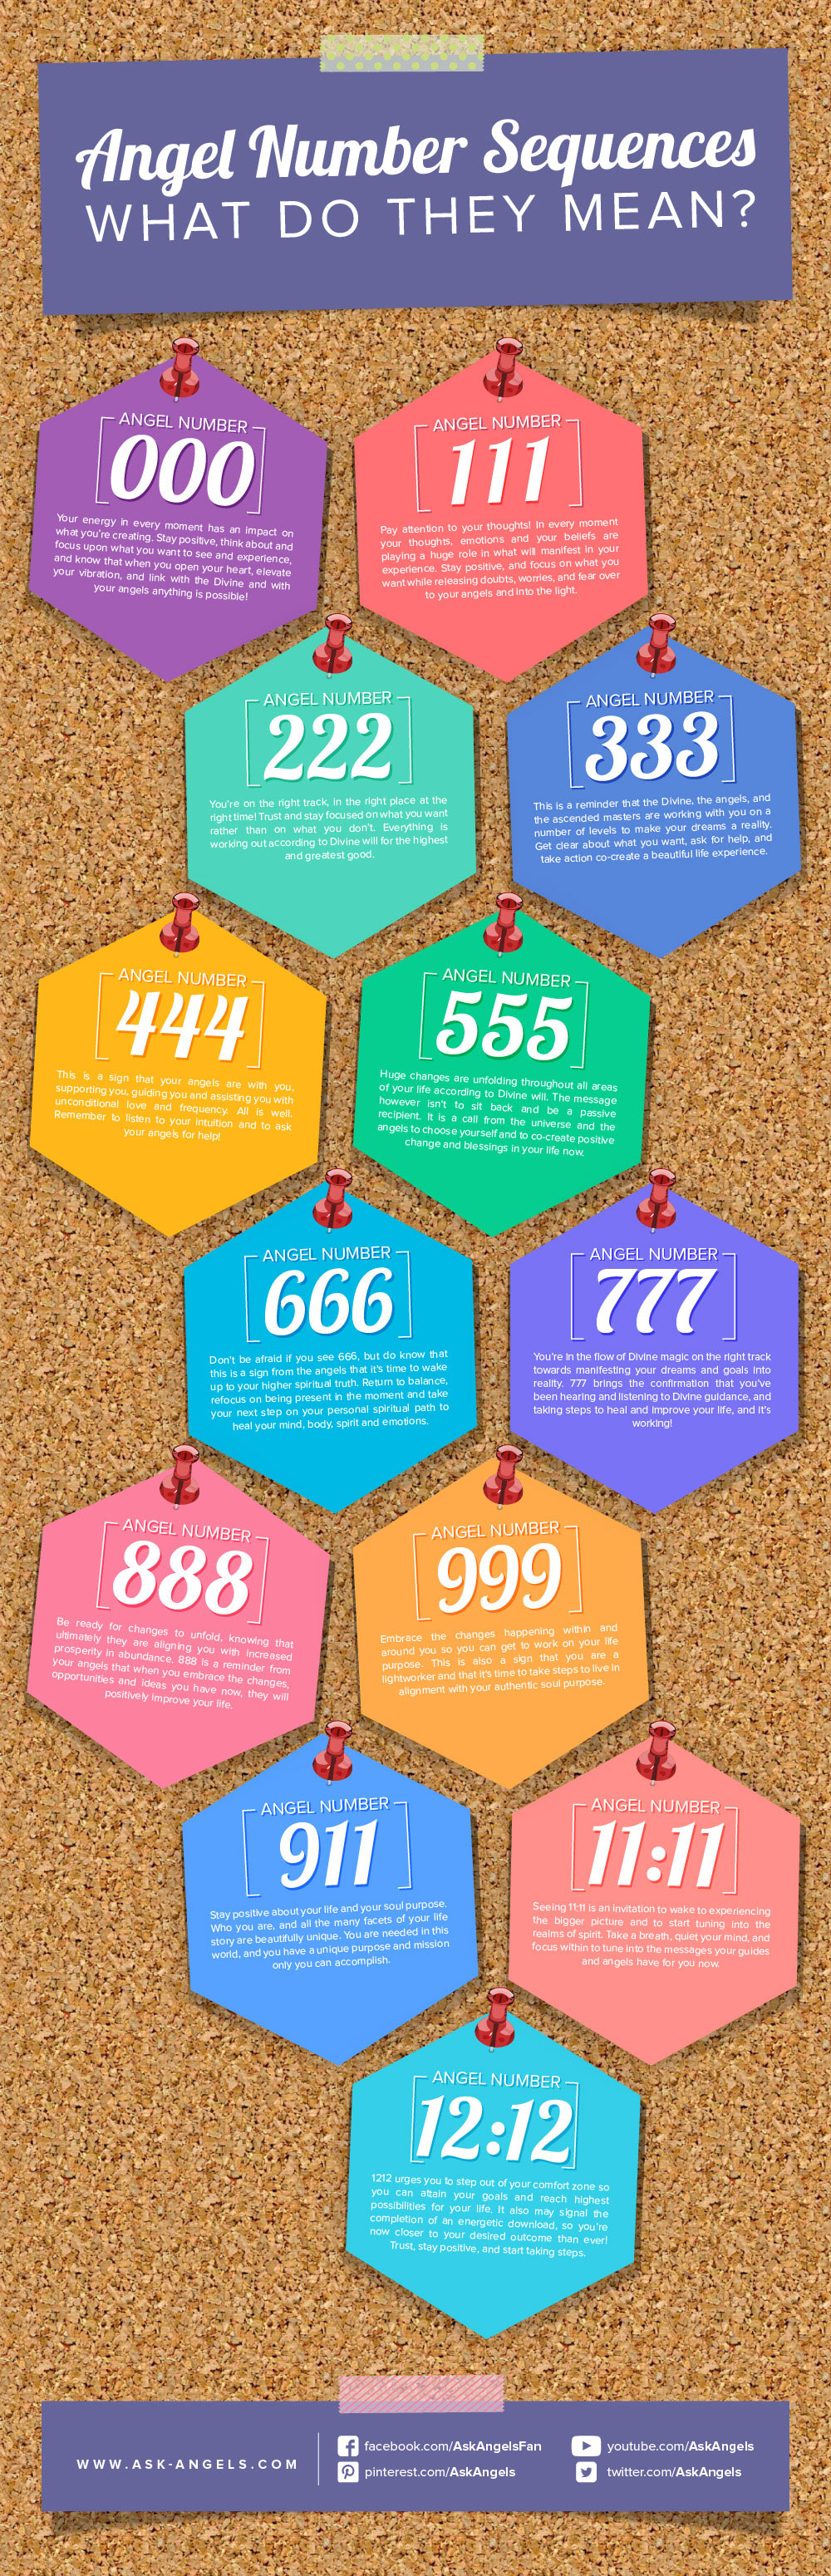 Angel Numbers are a common sign from spirit and from the angelic realm. Do you keep seeing numbers like 111, 222, 333, 444, 555, 777, or any other triple numbers like this? Here's a visual look at the spiritual meaning of the number sequences appearing in your life. Check out my full article for more insight into signs from spirit! #numerology #angelnumbers